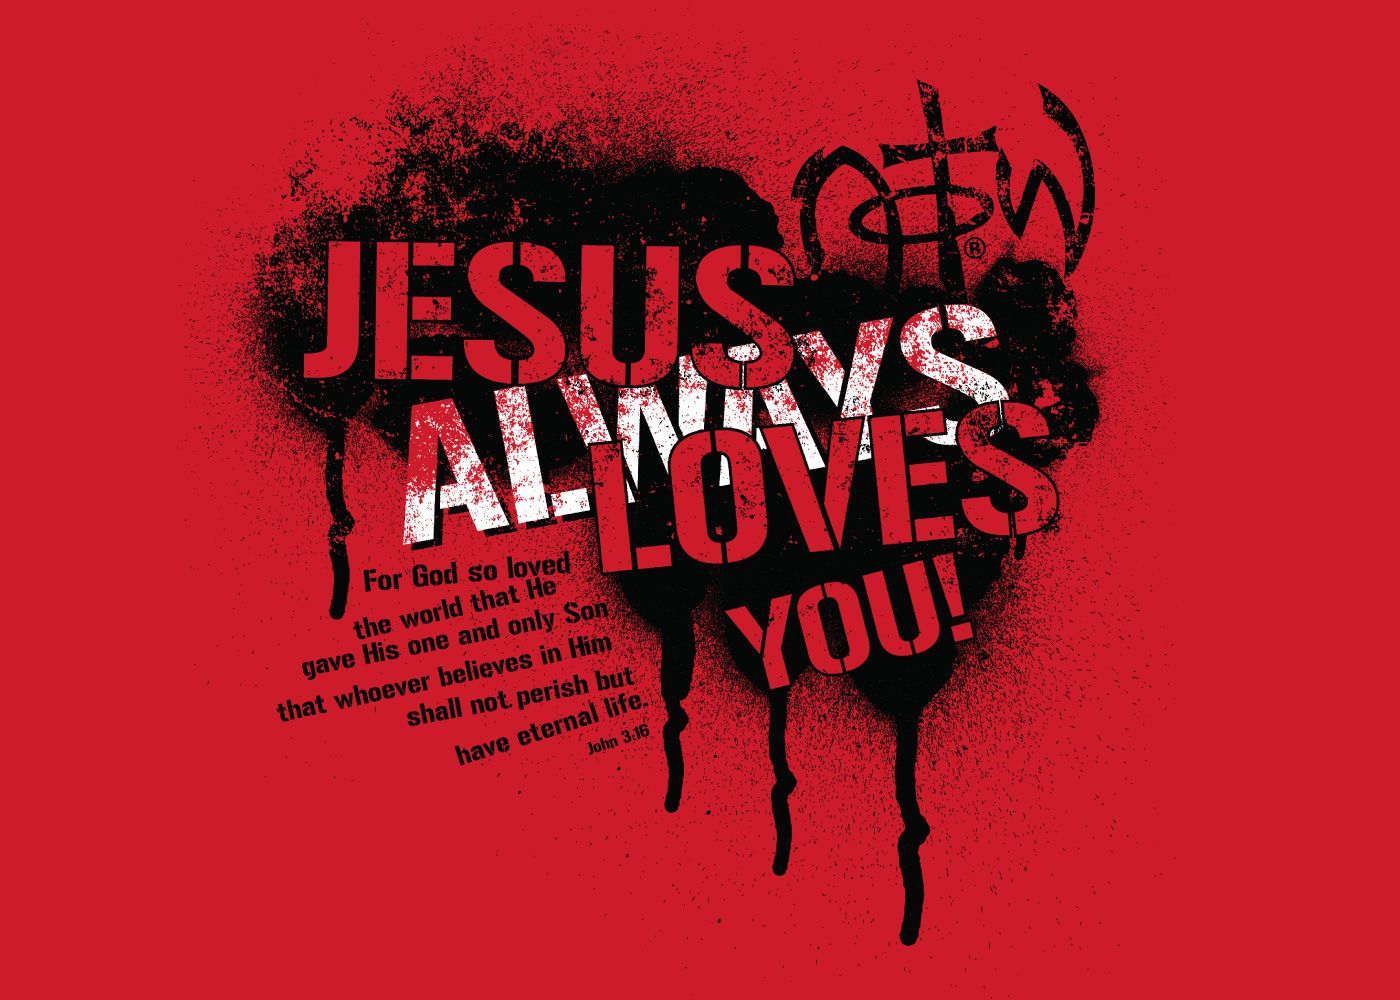 Always Loves - Free Christian Desktop Wallpaper | C28.com ...